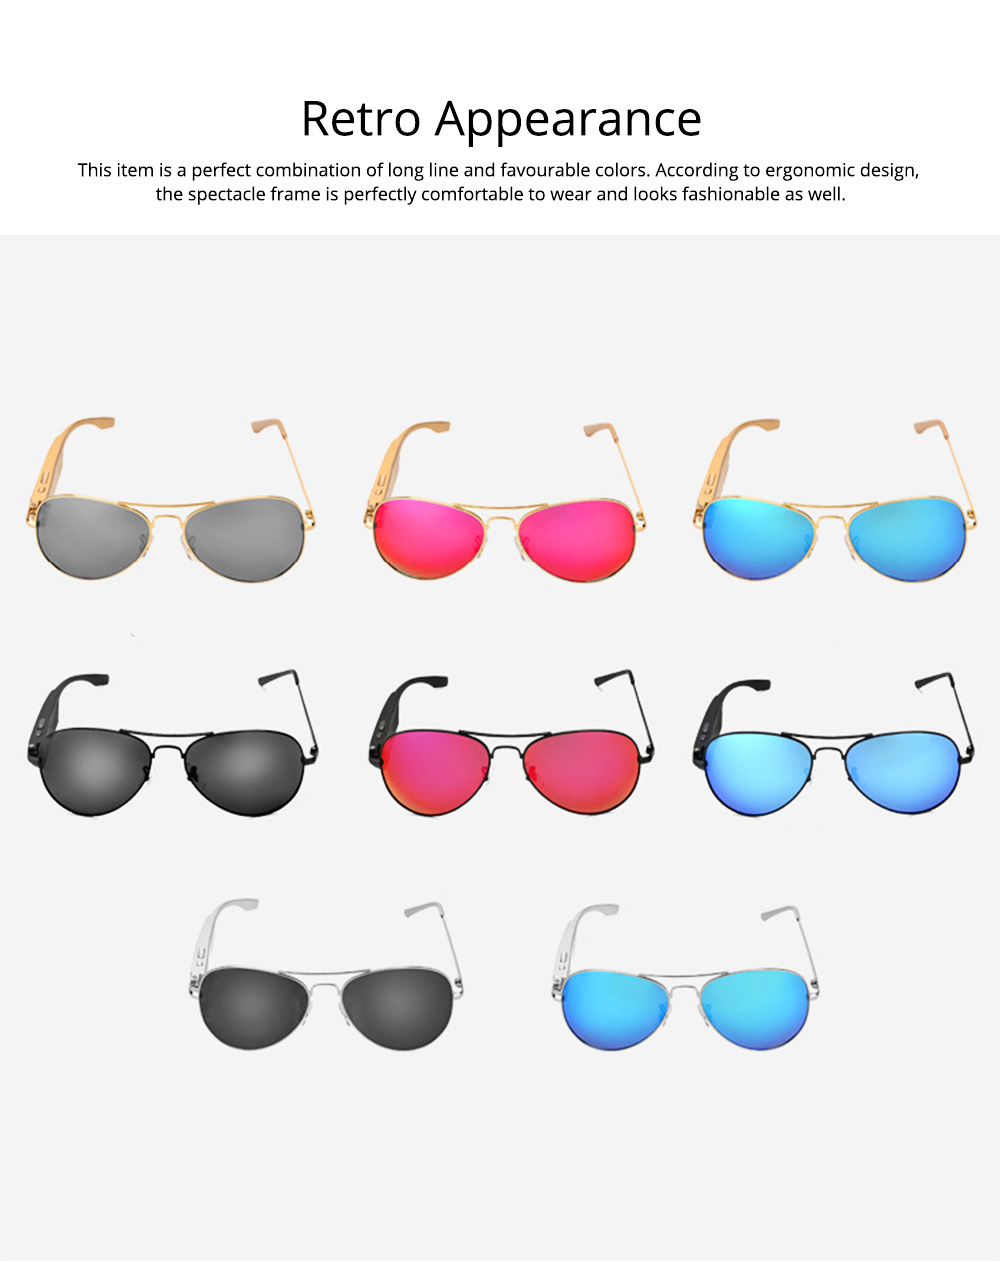 Smart Earphones Bluetooth 4.1 Version Polarized Sunglasses for Music, Broadcast and Phone Calls Long Distance Wireless Connected Smart Earphone 6